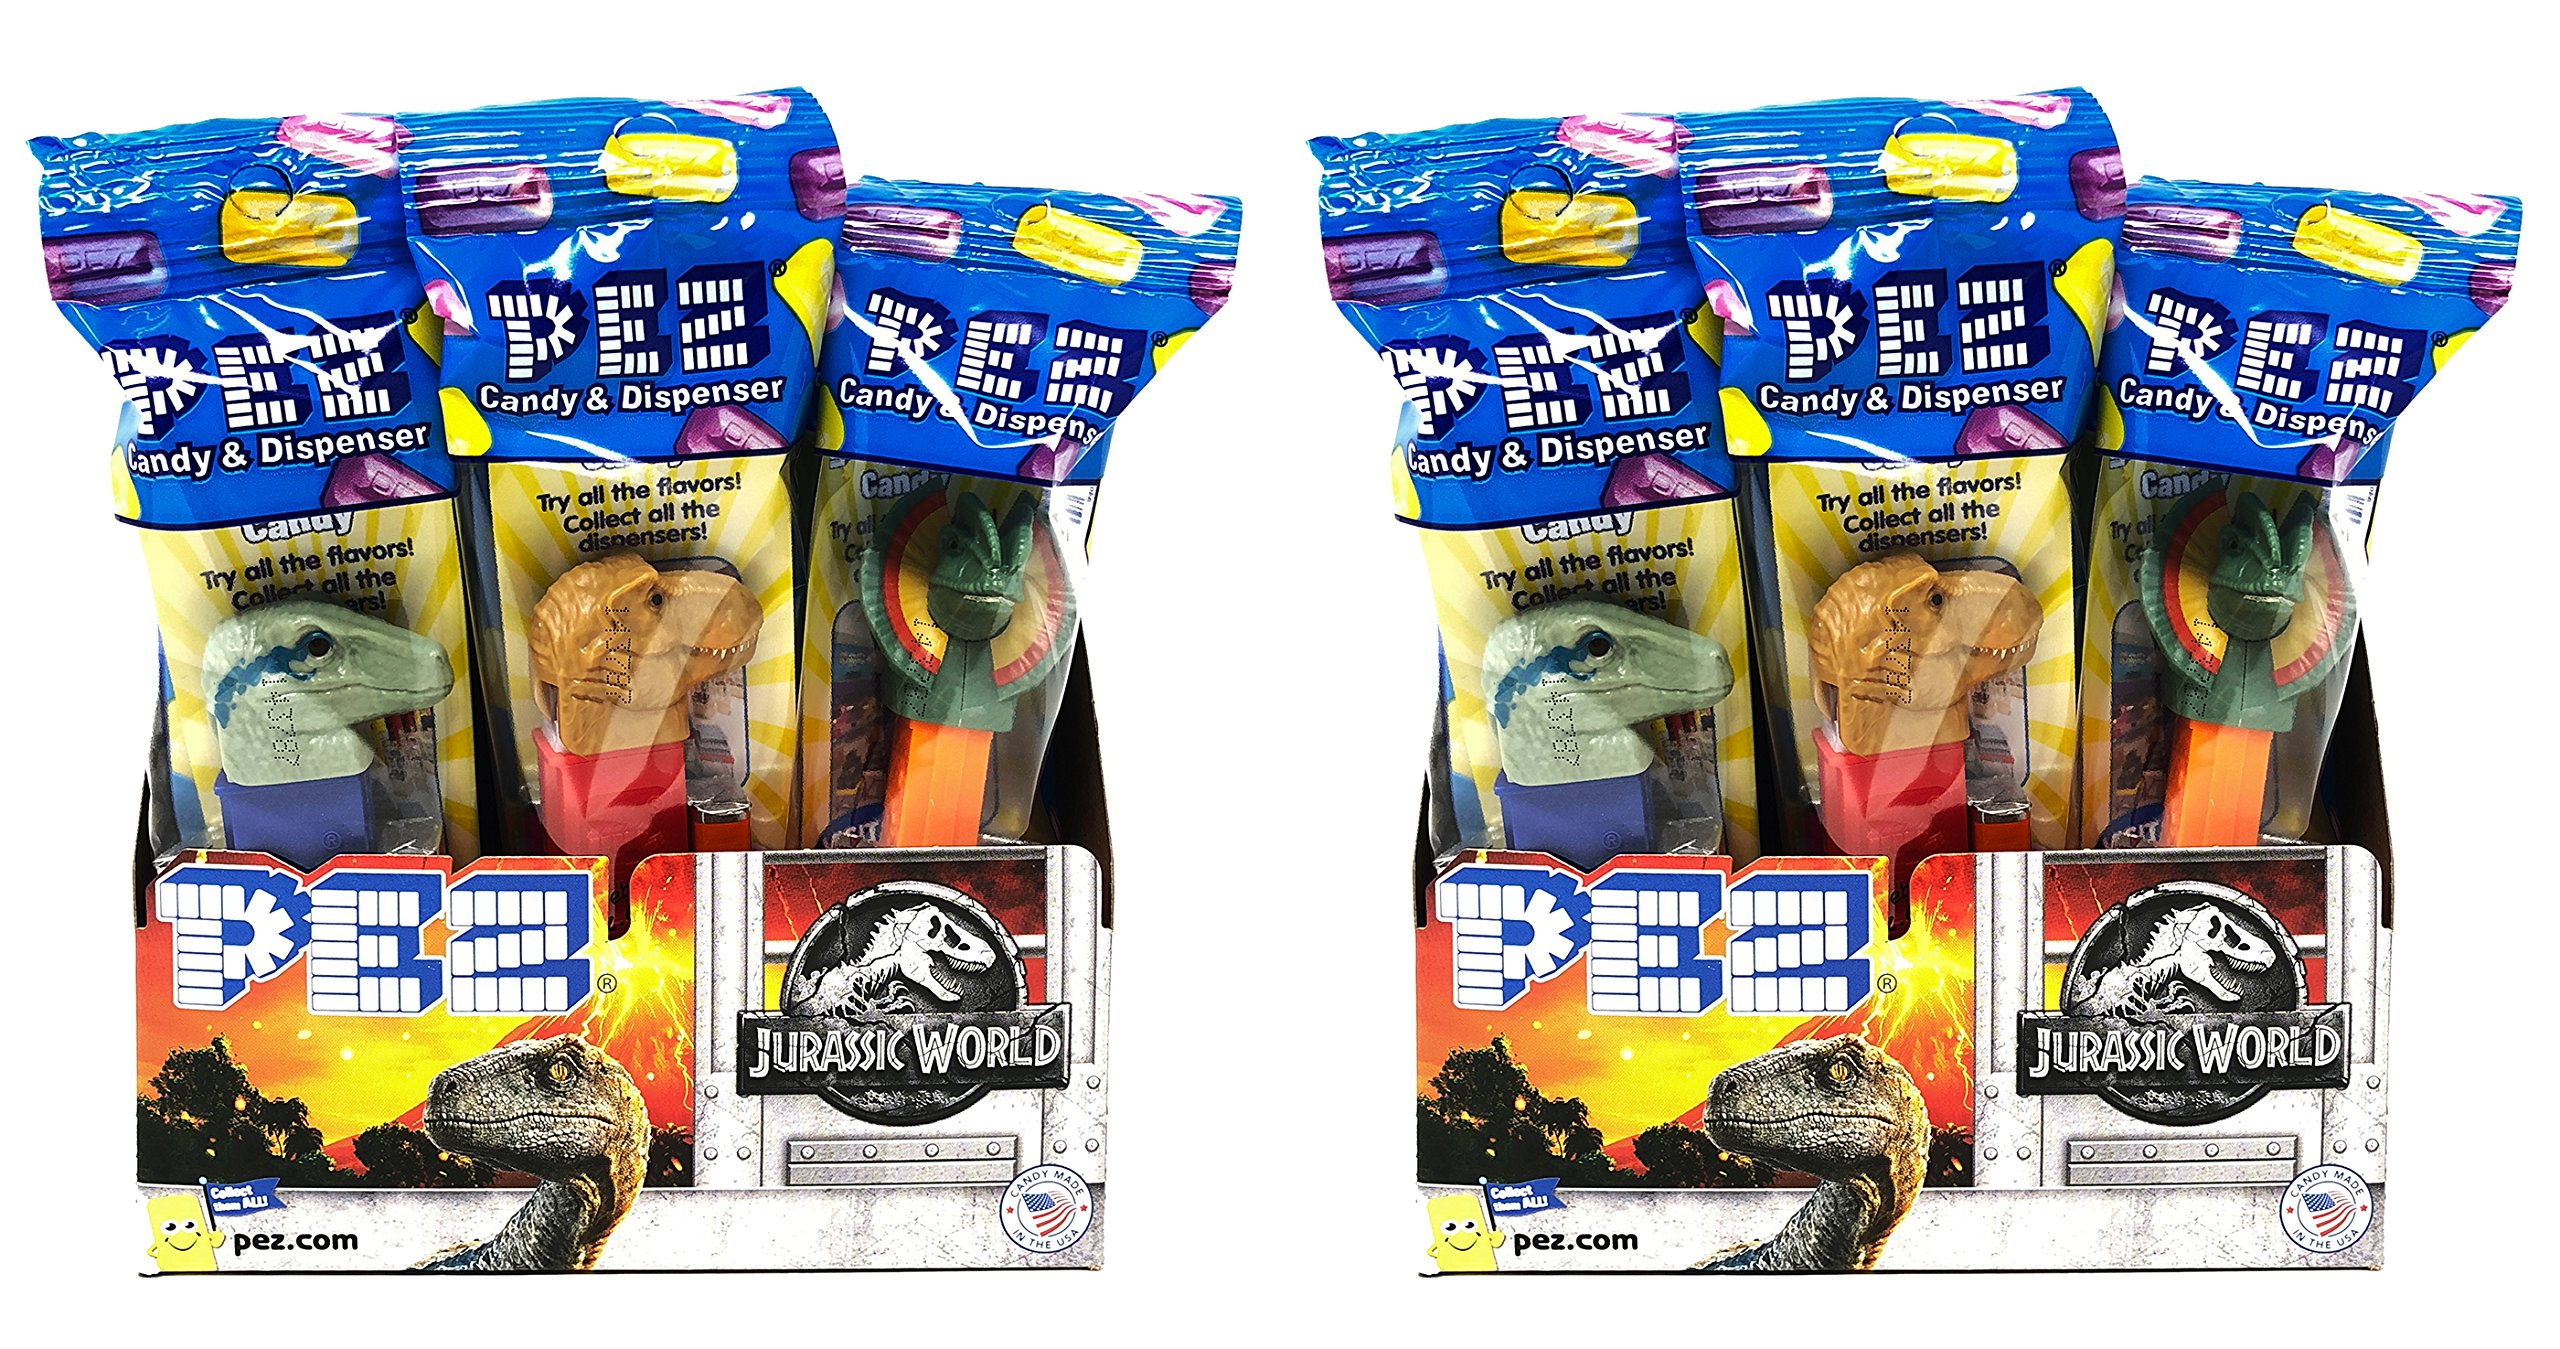 Pez Candy Jurassic World Fallen Kingdom Candy Dispensers - Individually Wrapped - Great for Party Favors and Pez Collector's (24 Pack) by PEZ Candy (Image #1)